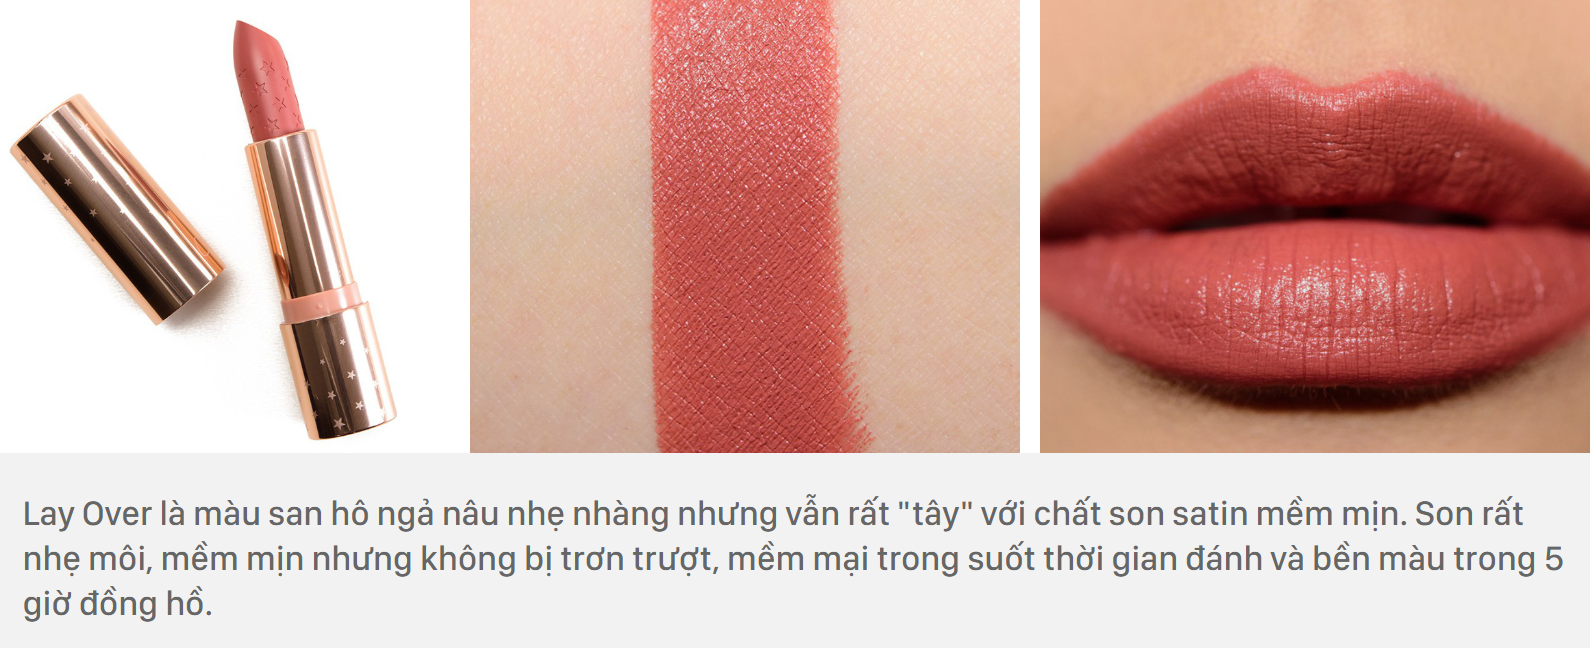 ColourPop Lux Lipstick màu Lay Over